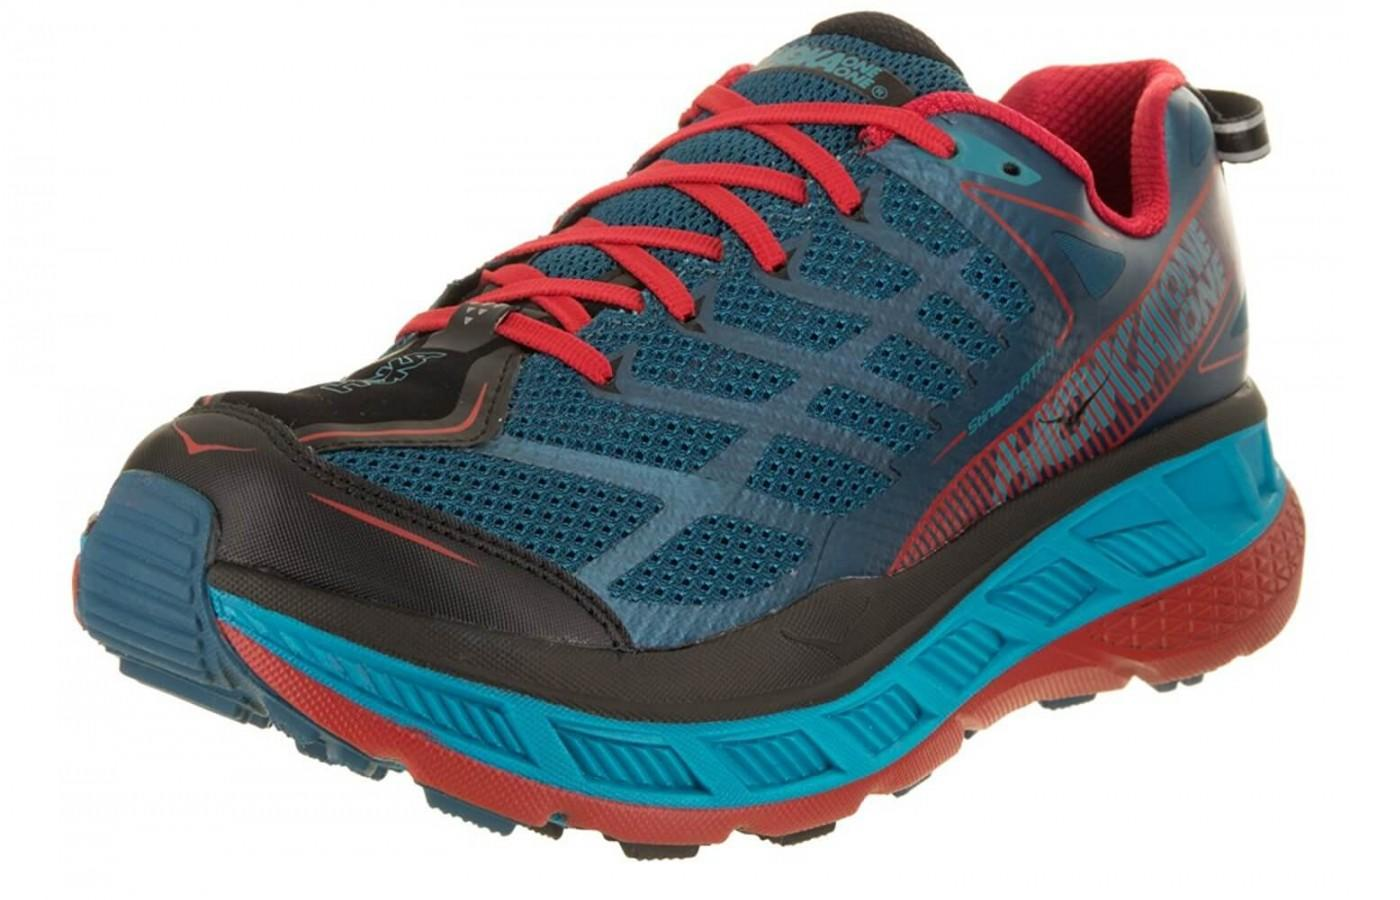 The thick midsole of this Hoka model takes on the trails too.